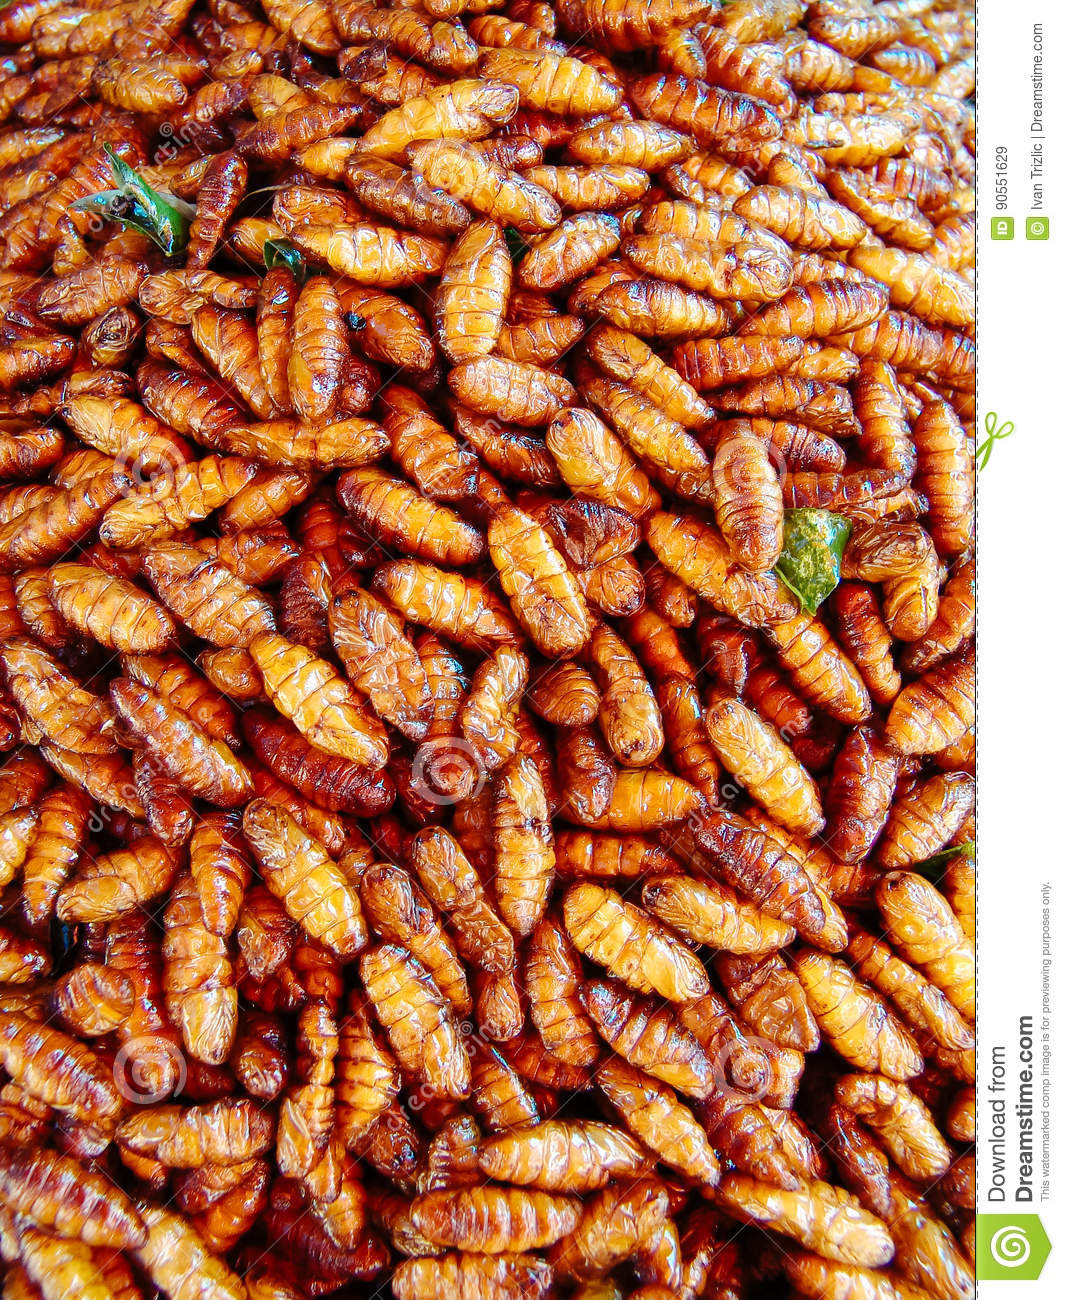 Fried insects on the street food stalls of Asia